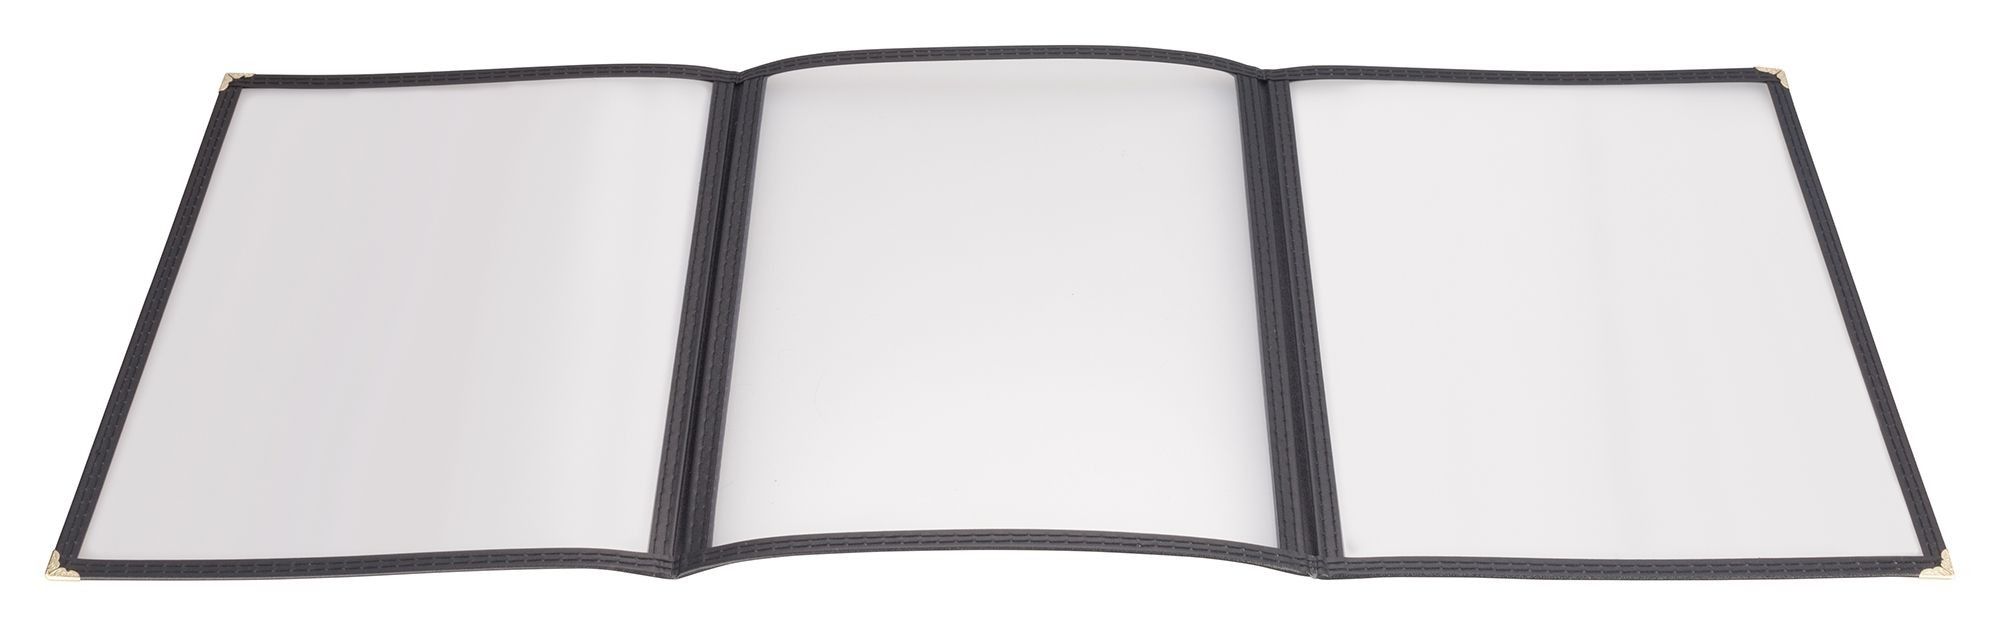 "Winco PMCT-9K Black Triple Fold Menu Cover 9-1/2"" x 12"""